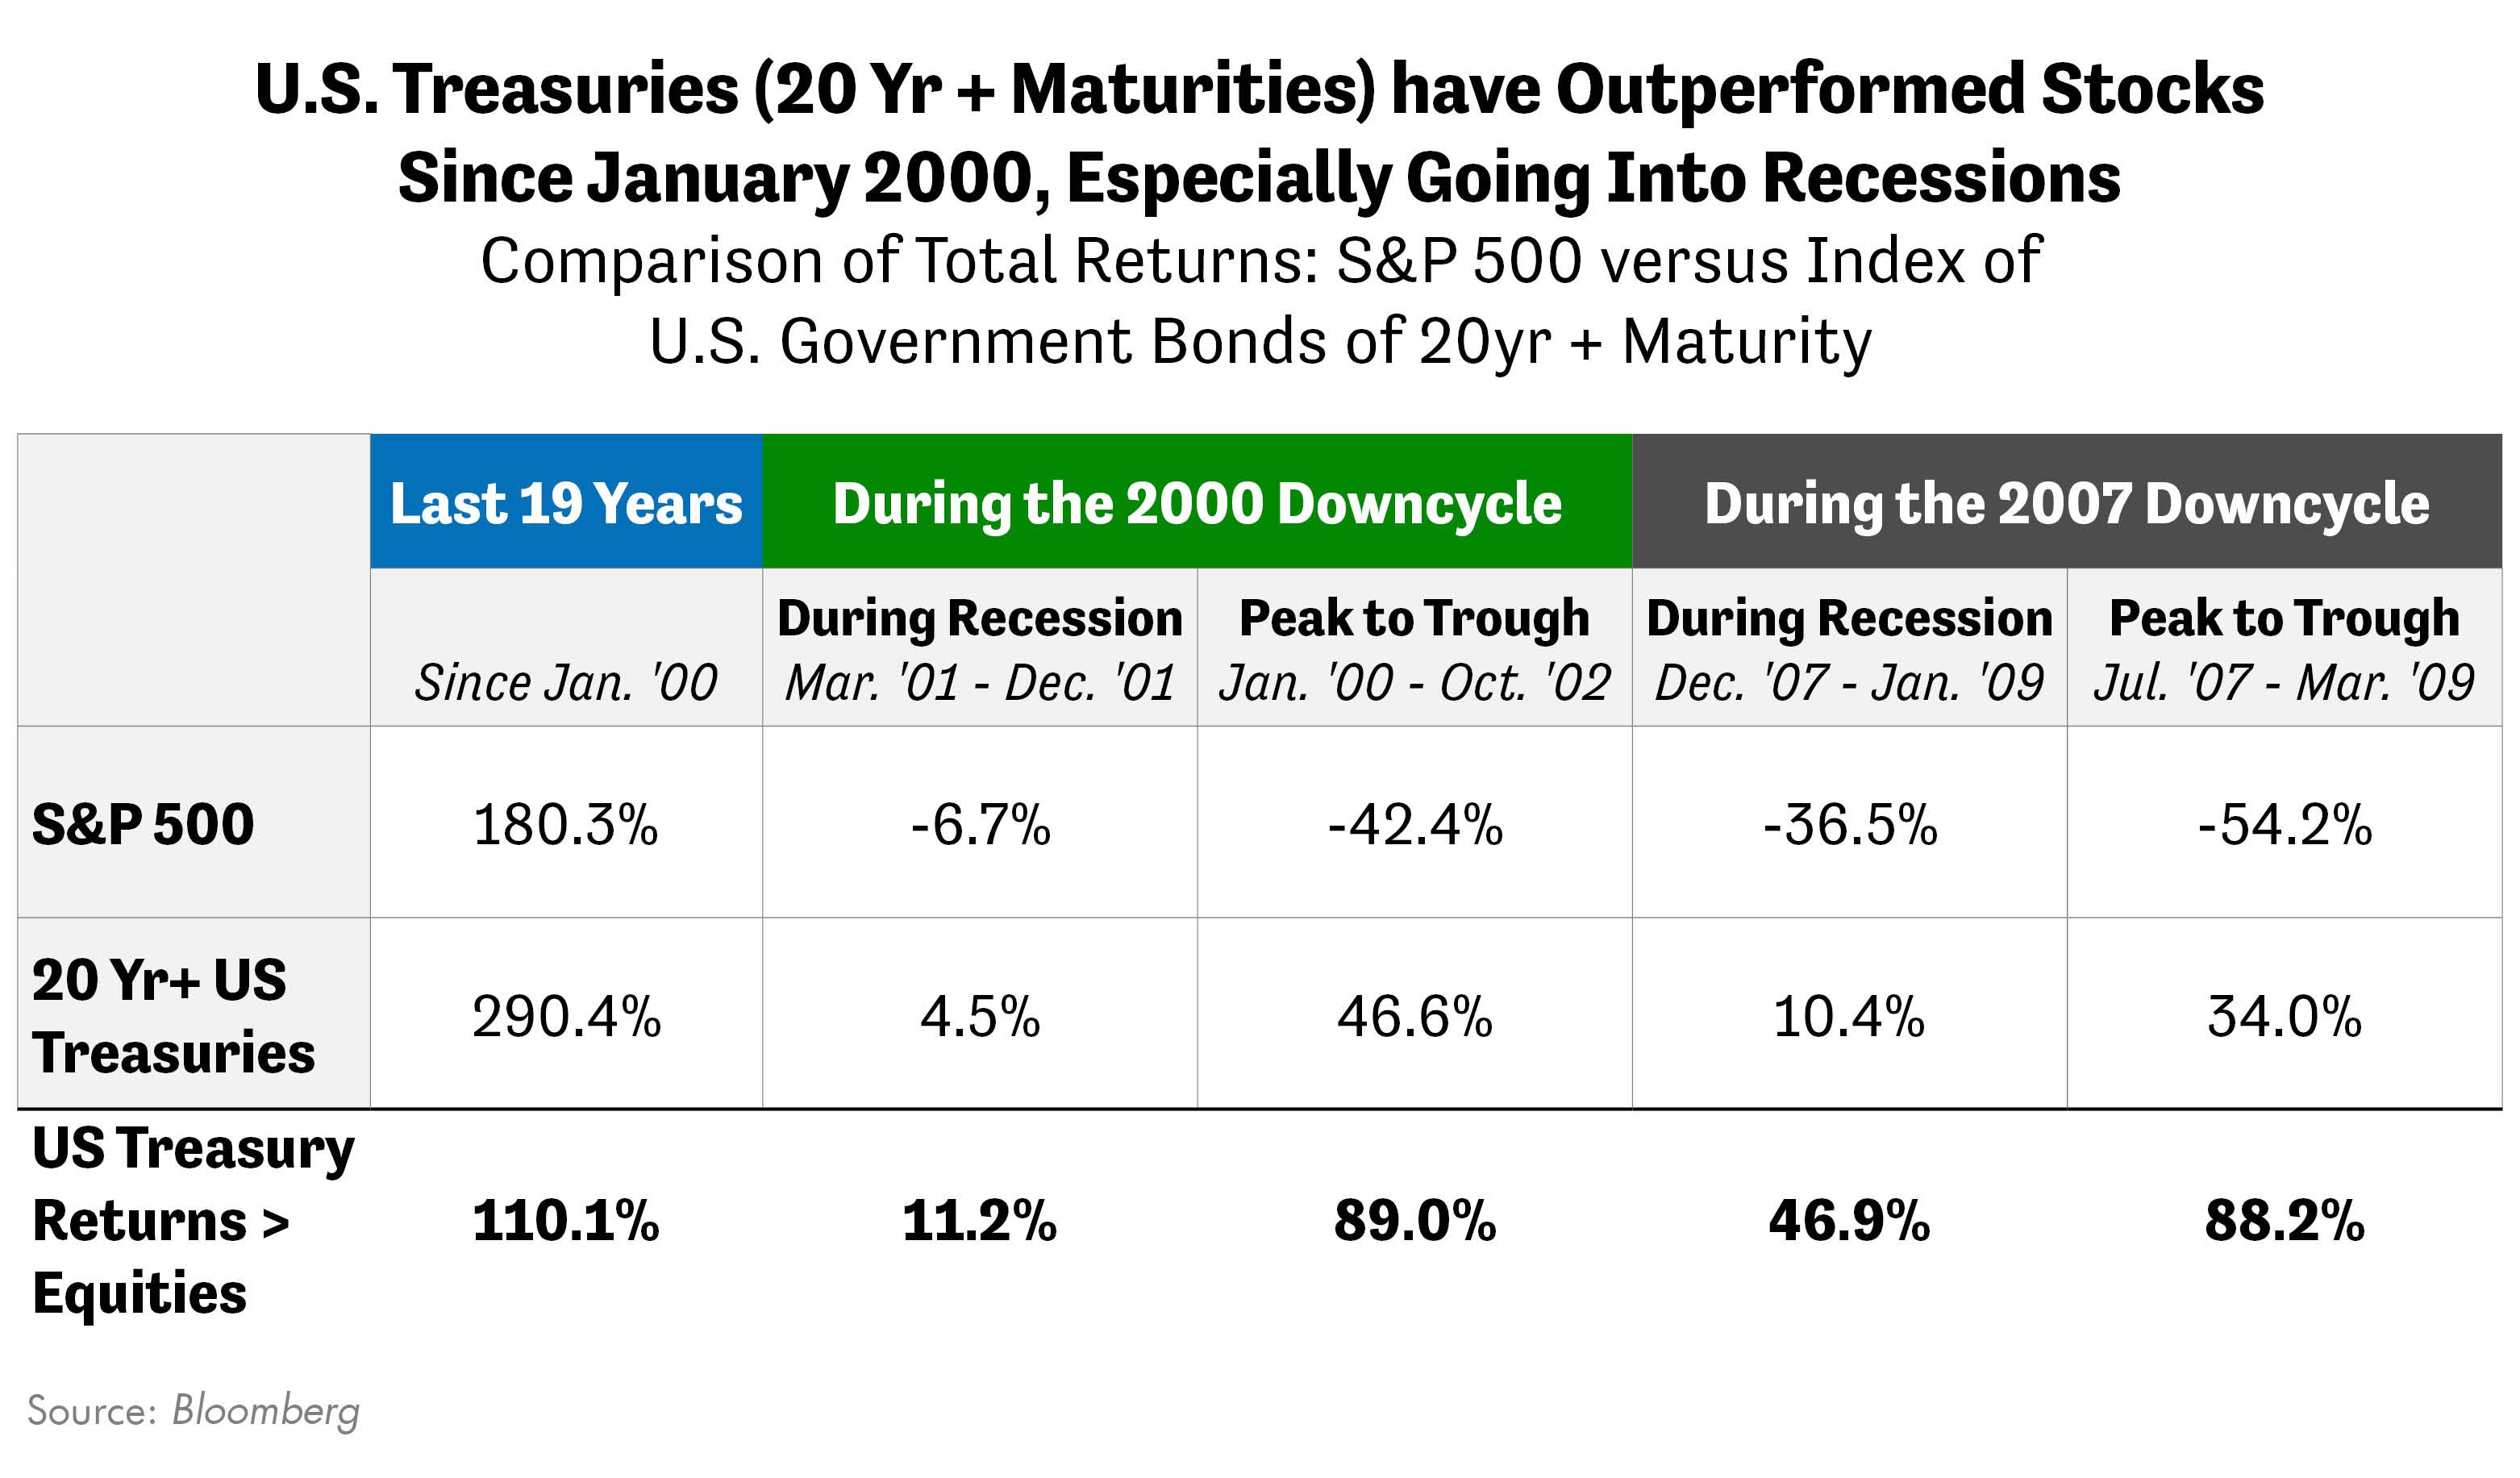 U.S. Treasuries have Outperformed Stocks Since January 2000